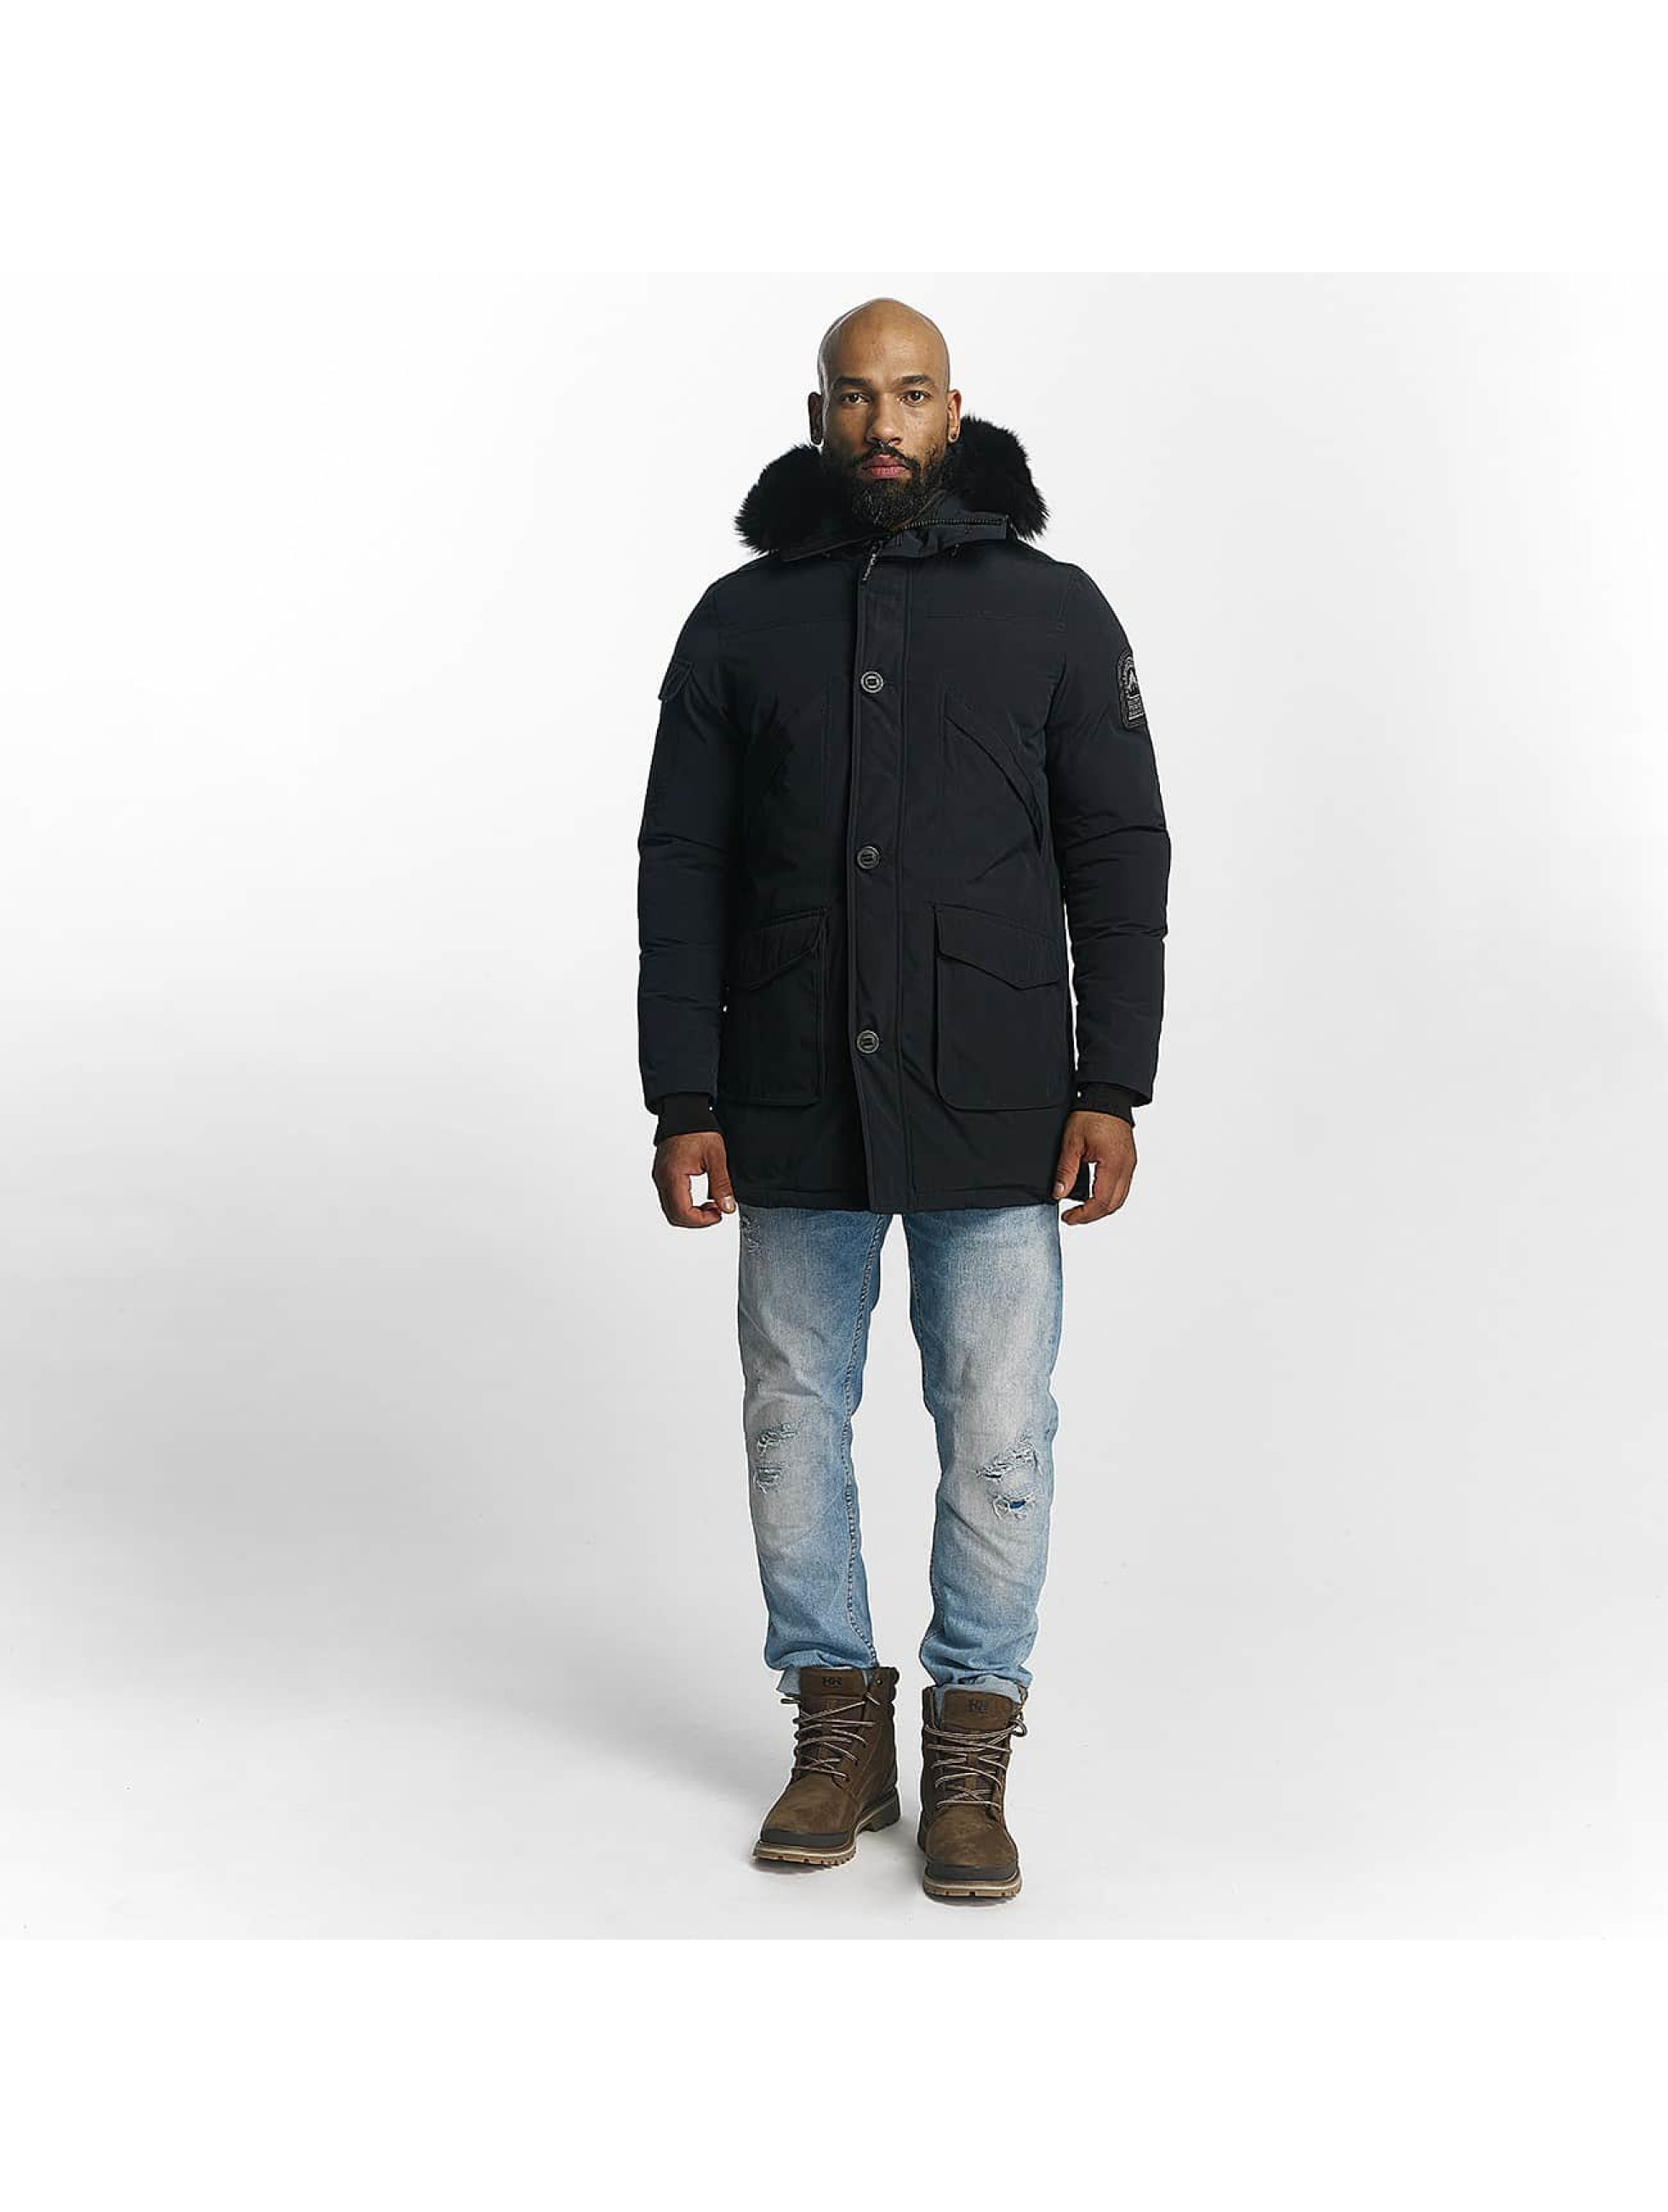 Helvetica Manteau hiver Timber Long Black Edition bleu